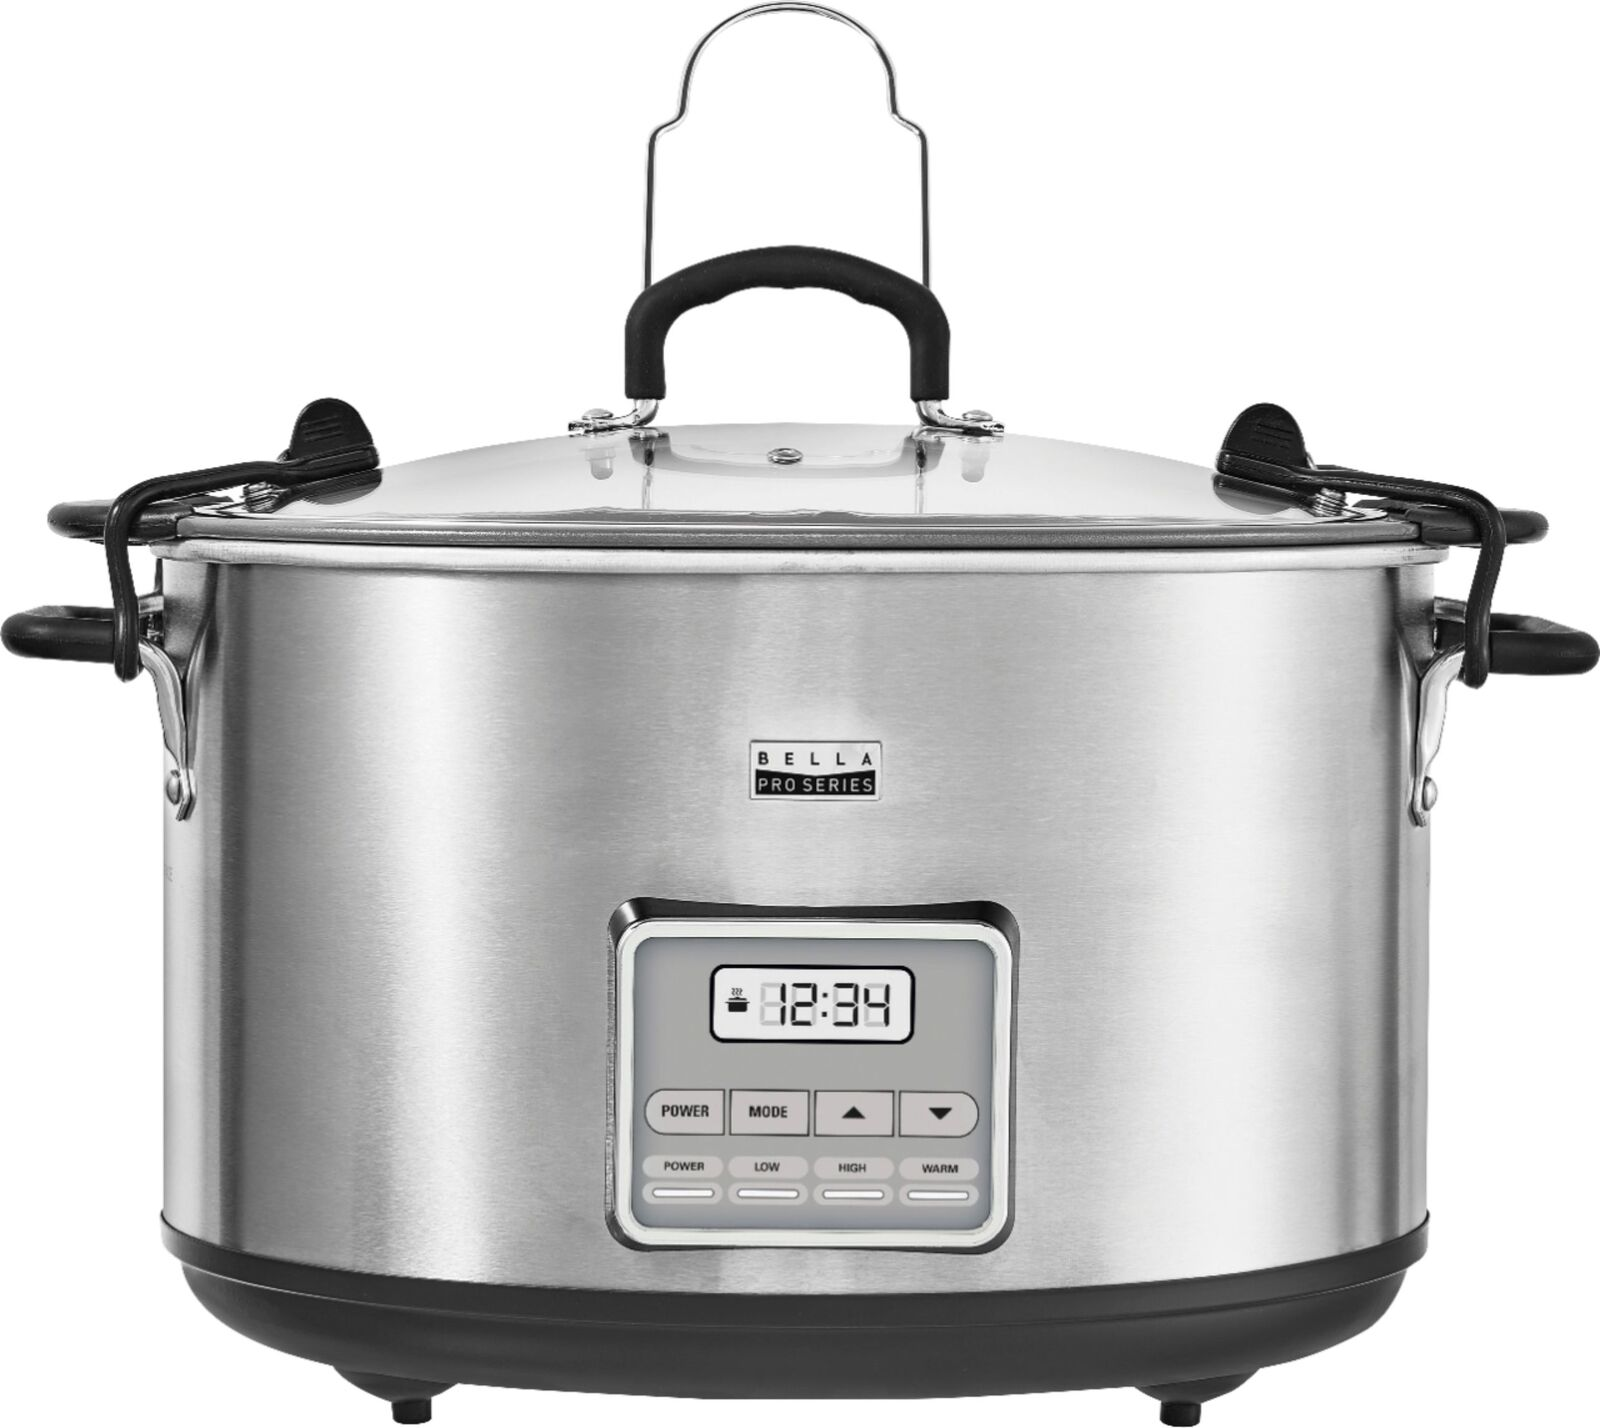 Bella - Pro Series 10-qt. Digital Slow Cooker - Stainless Steel